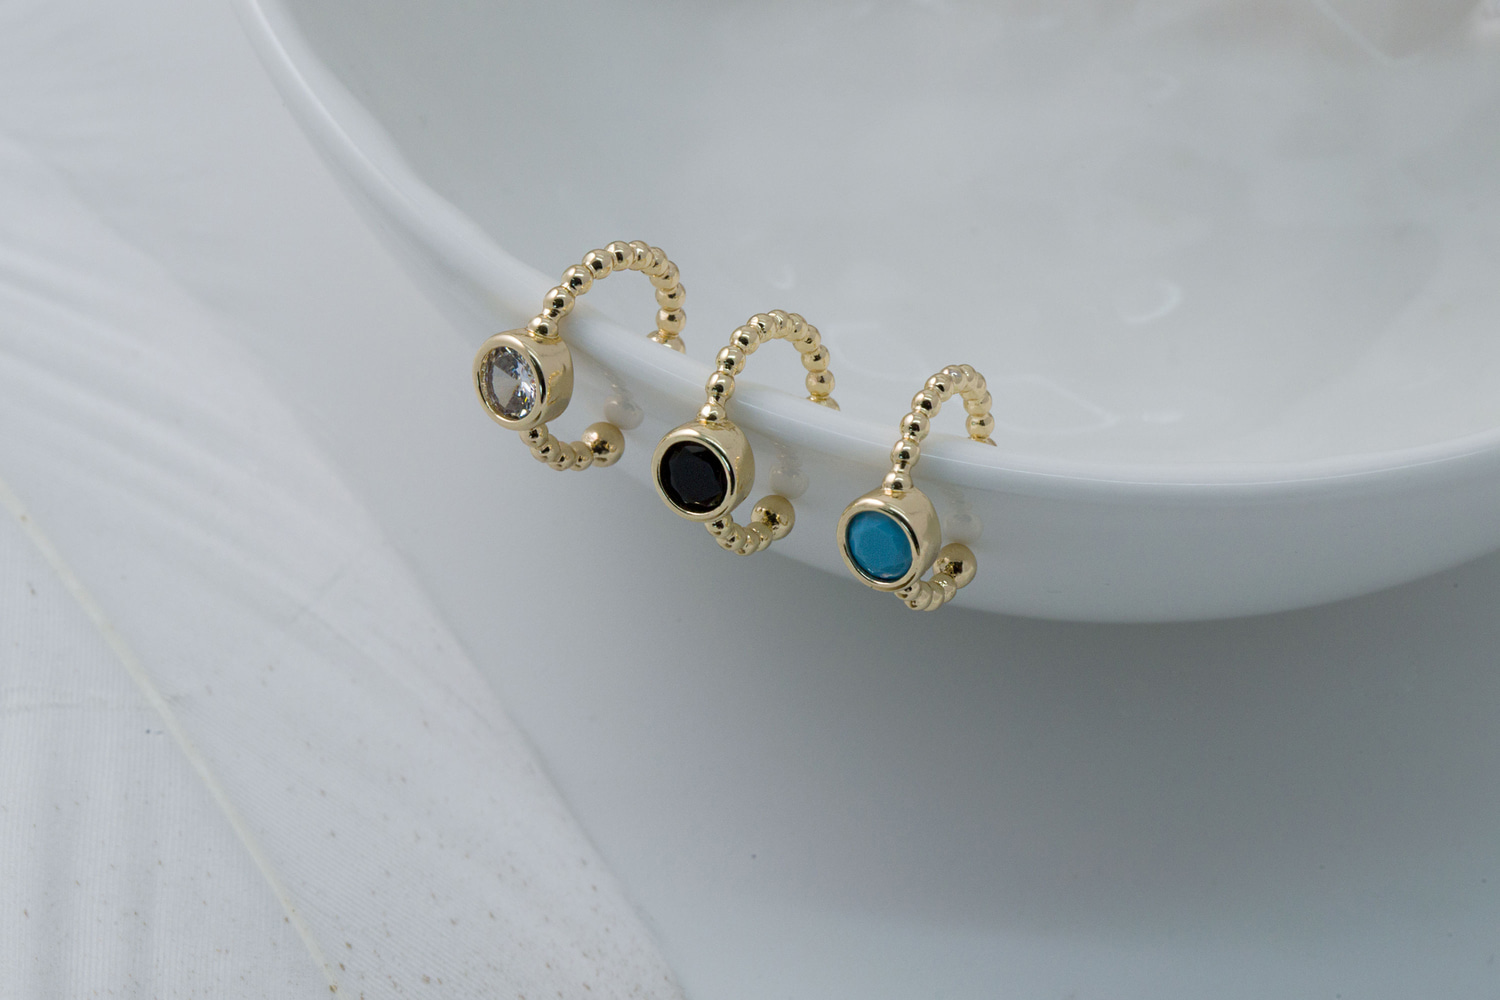 [ECB20-01] Round cubic ear cuff collection, Nickel free, Handmade jewelry, Non-pierced earring, Ear climber